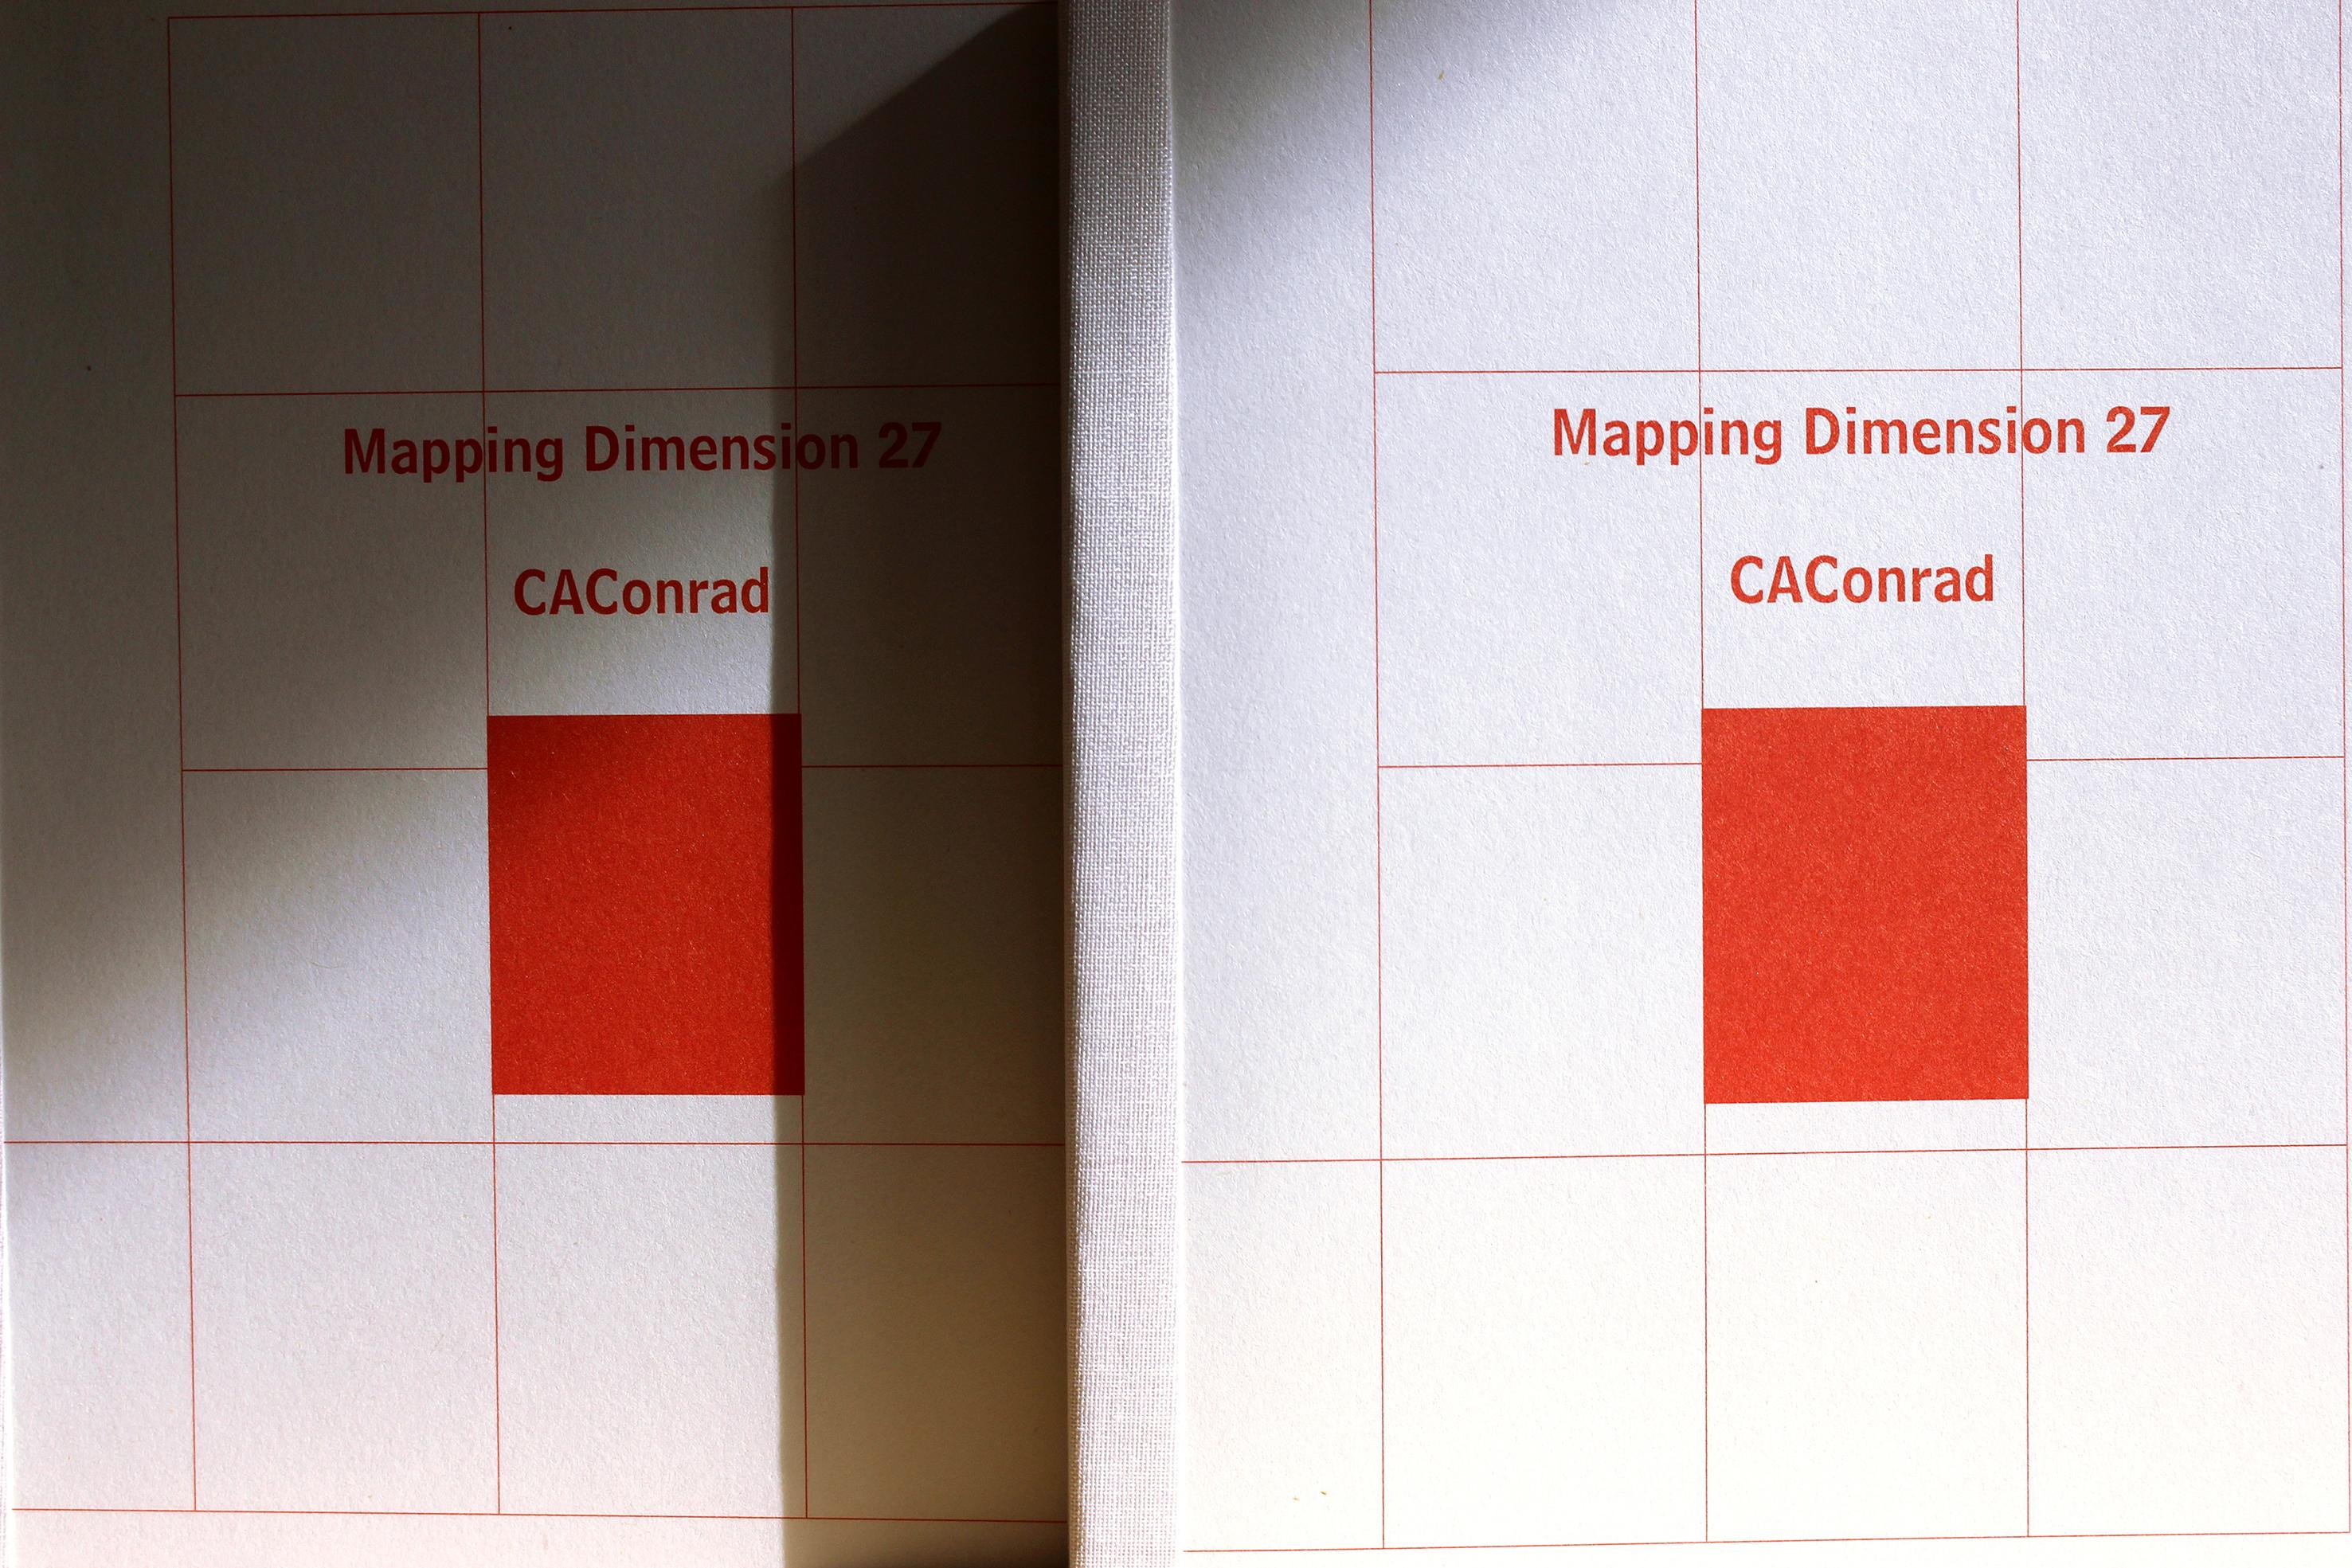 CAConrad: Mapping Dimensions 27